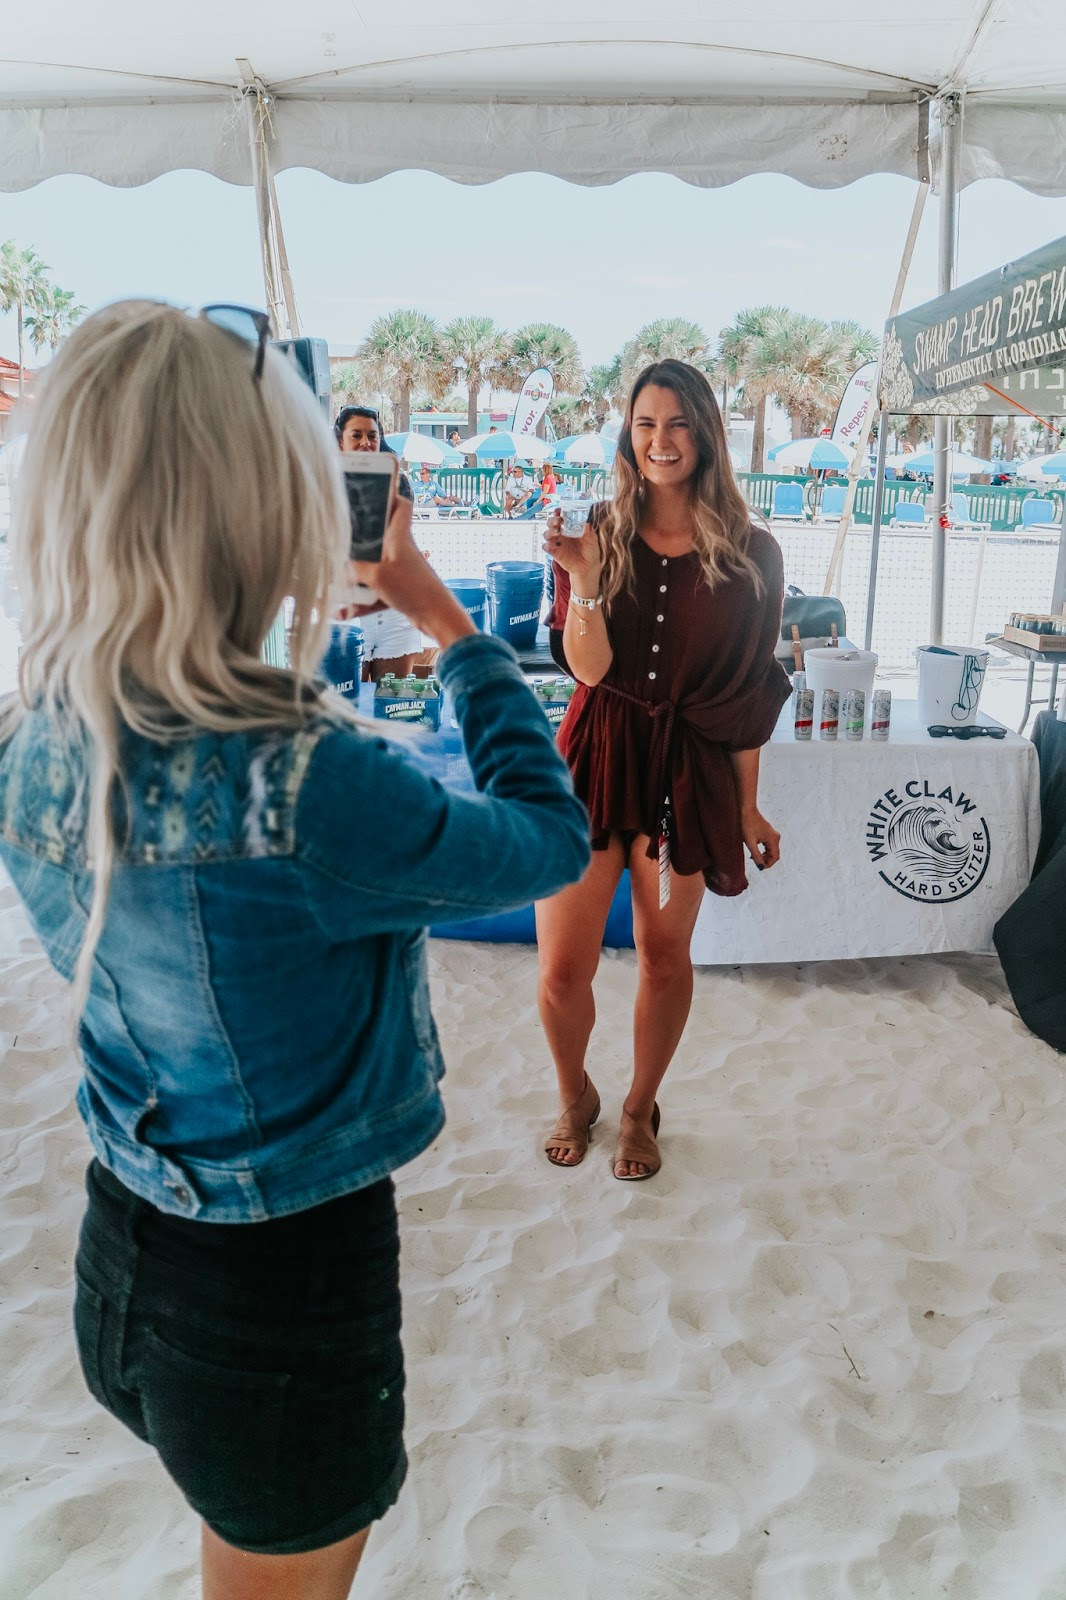 Tampa Bay Blogger at Clearwater Beach's Uncorked food and wine festival posing with White Claw